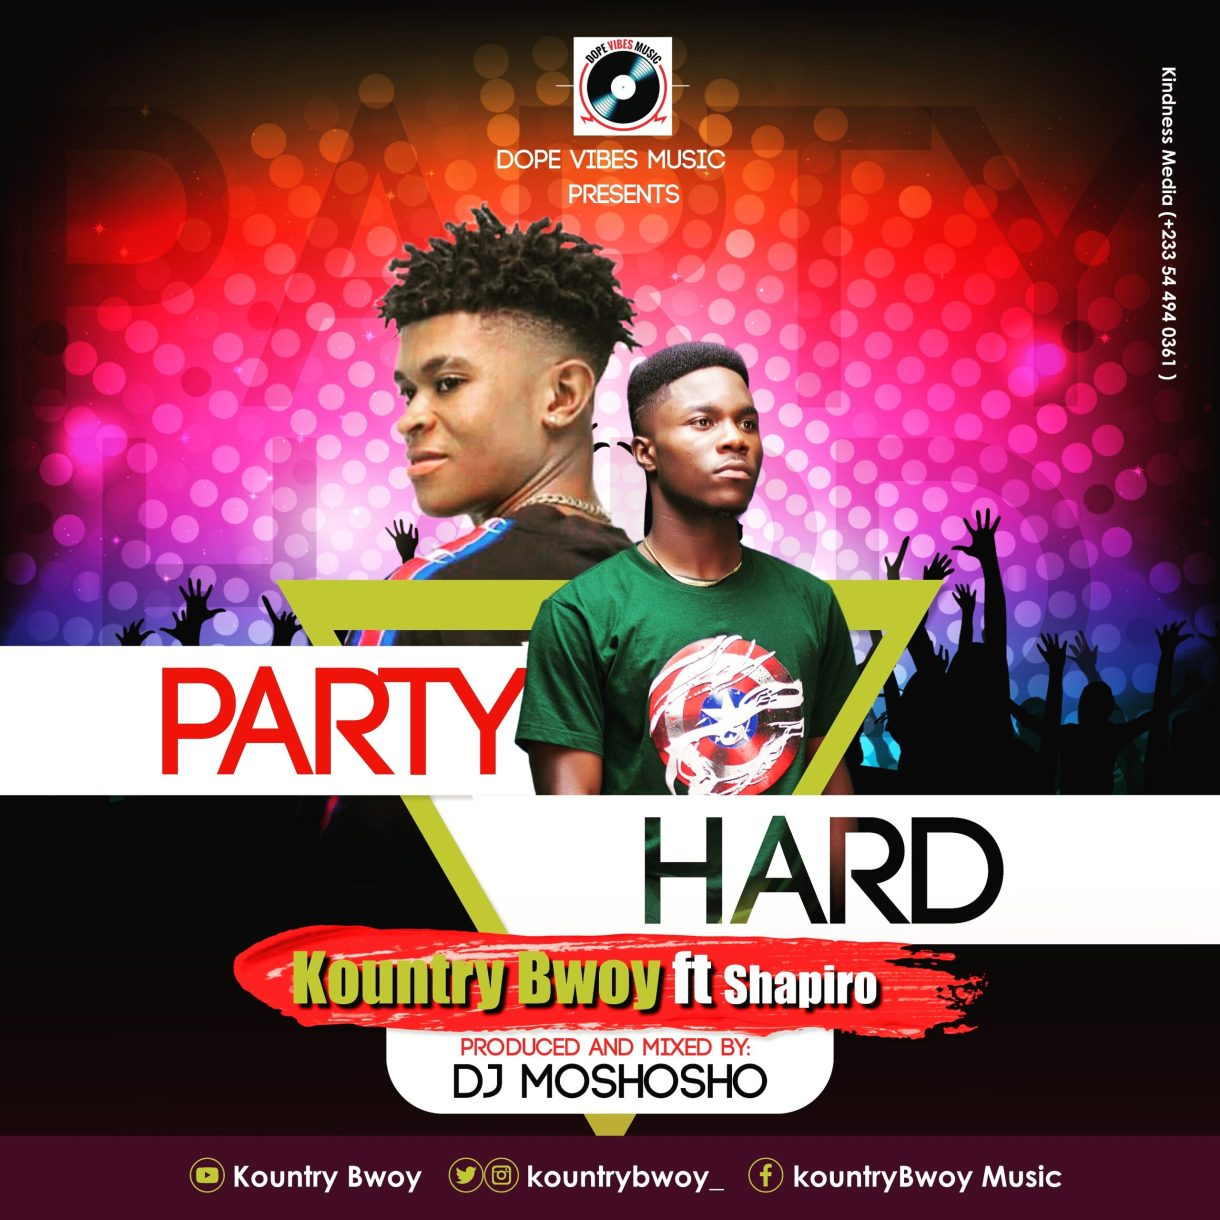 Kountry Bwoy – Party Hard Ft Shapiro (Prod By DJ Moshoho)